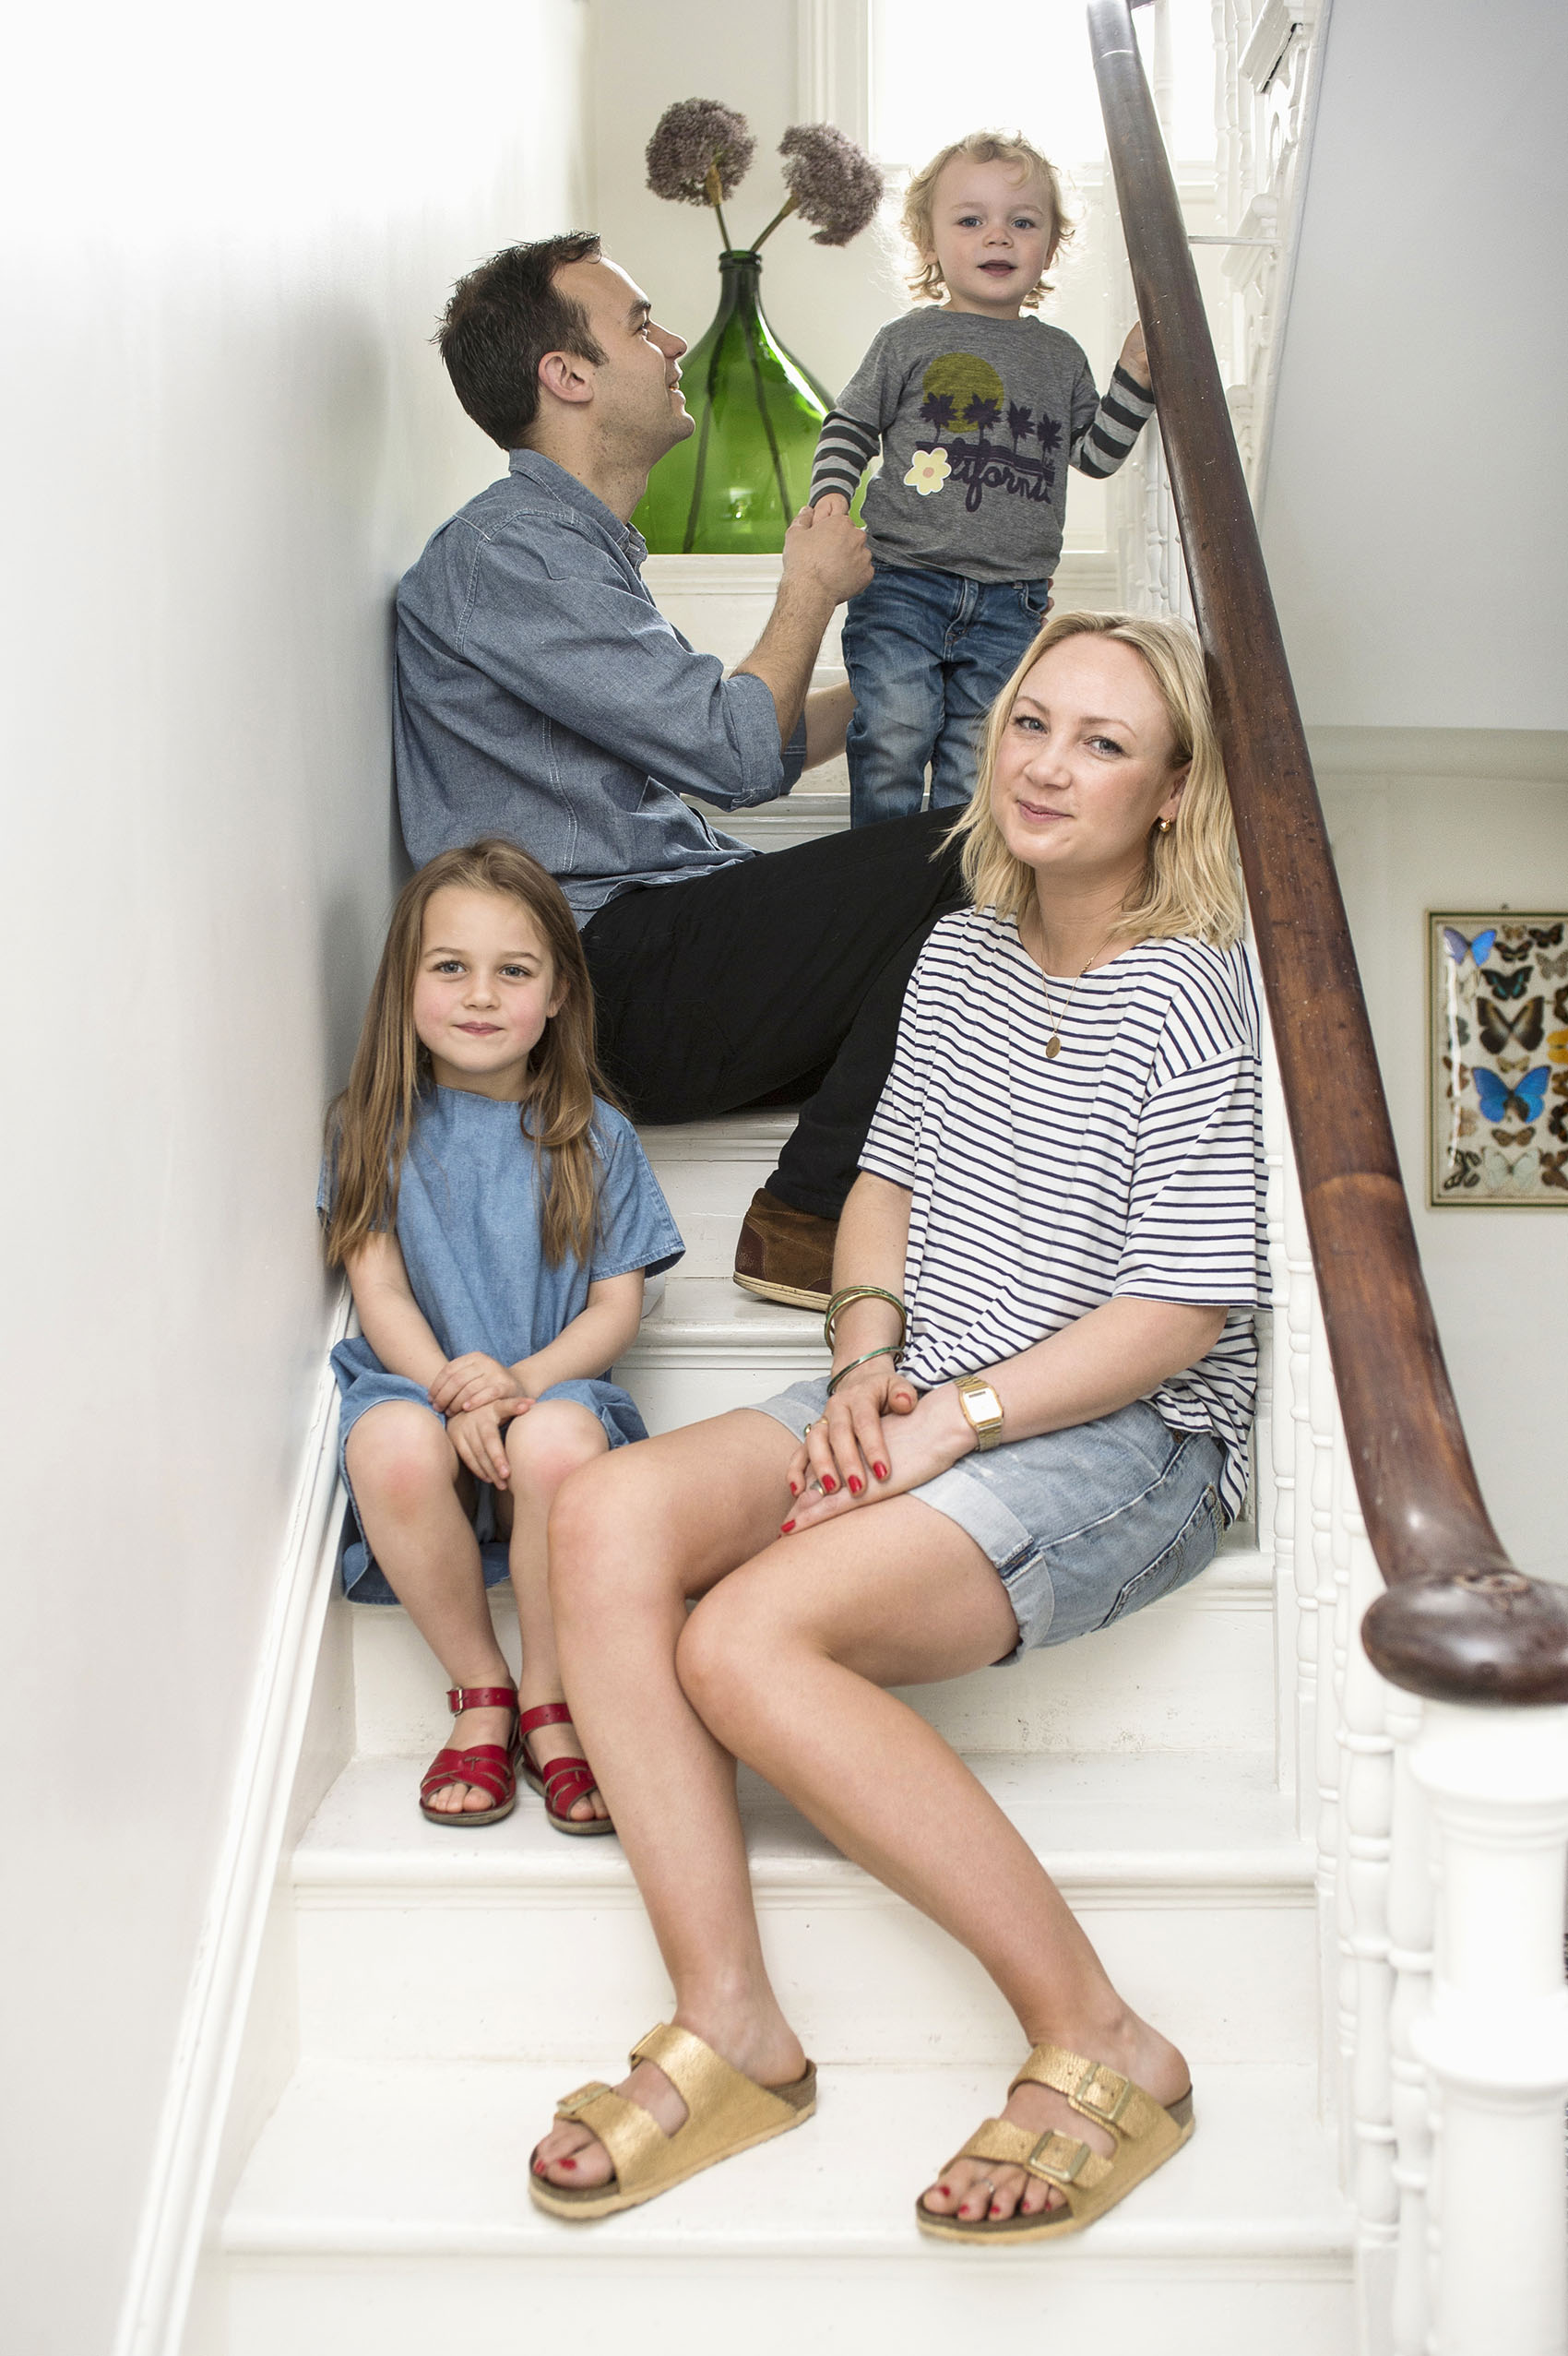 In London, a Shop Owner's Carefully Considered Family Home | Design*Sponge